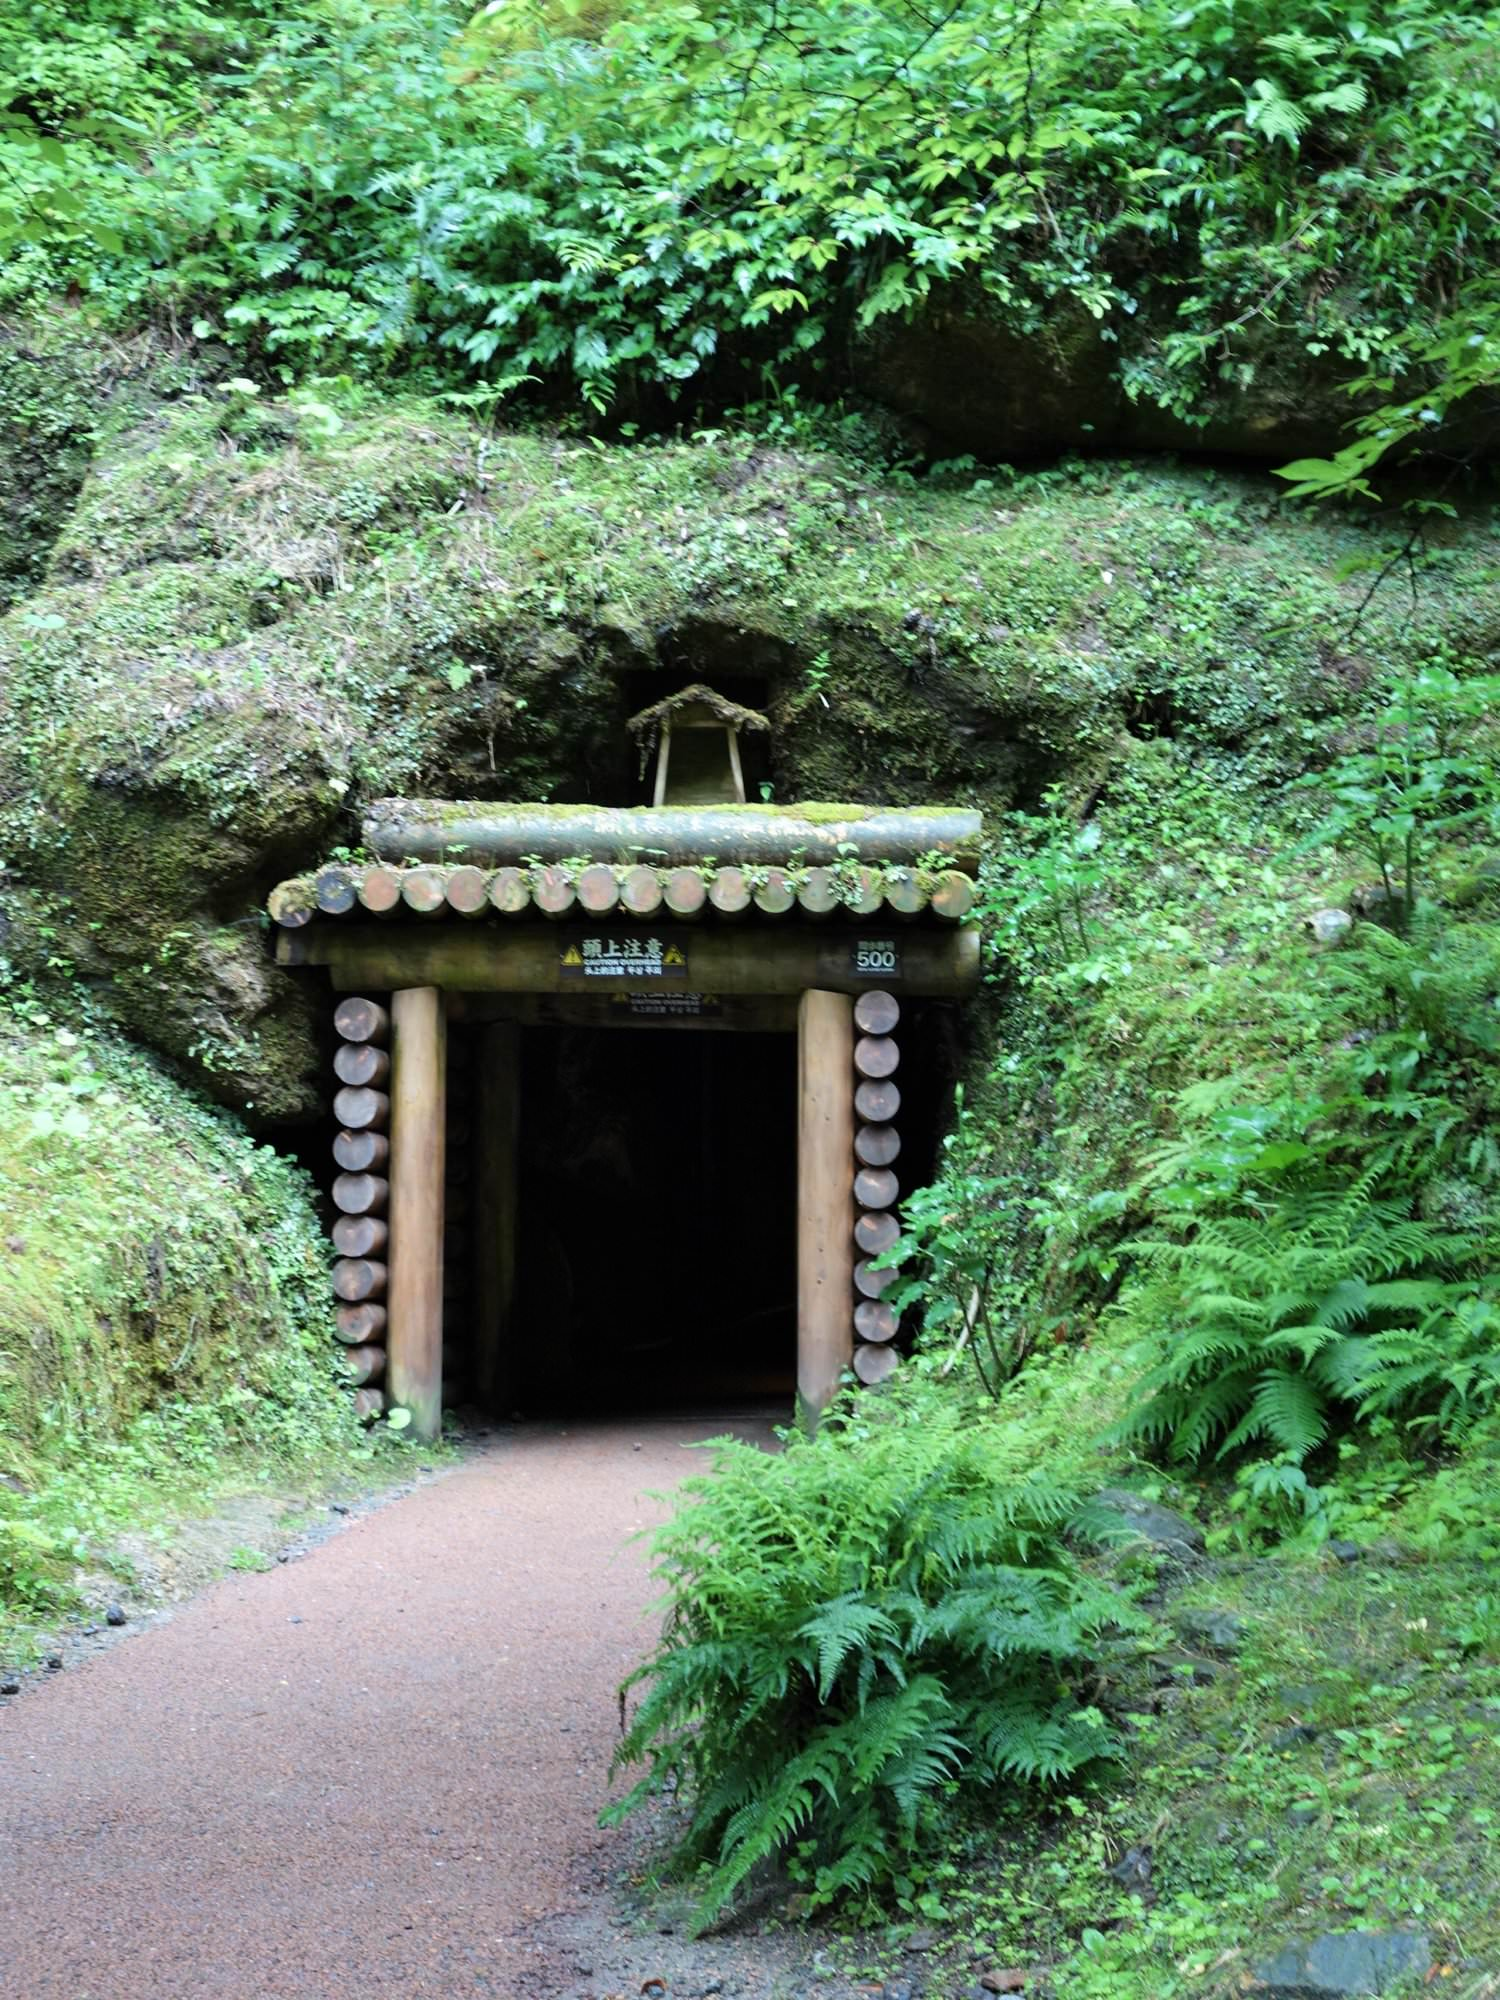 The entrance of Ryugenji Mabu Mine Shaft